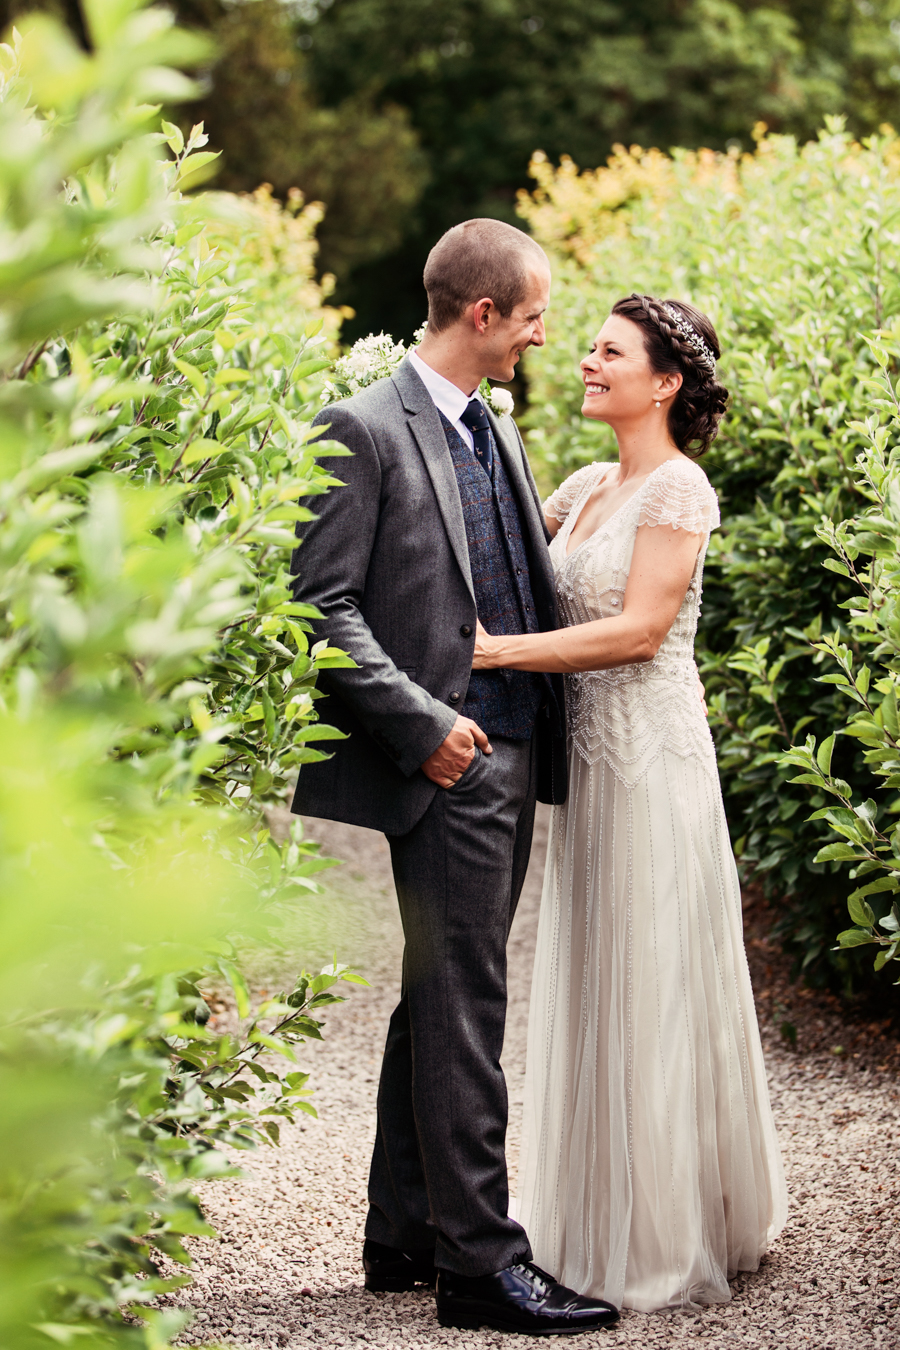 Askham Hall wedding venue on the English Wedding Blog, with Camilla Lucinda Photography (23)